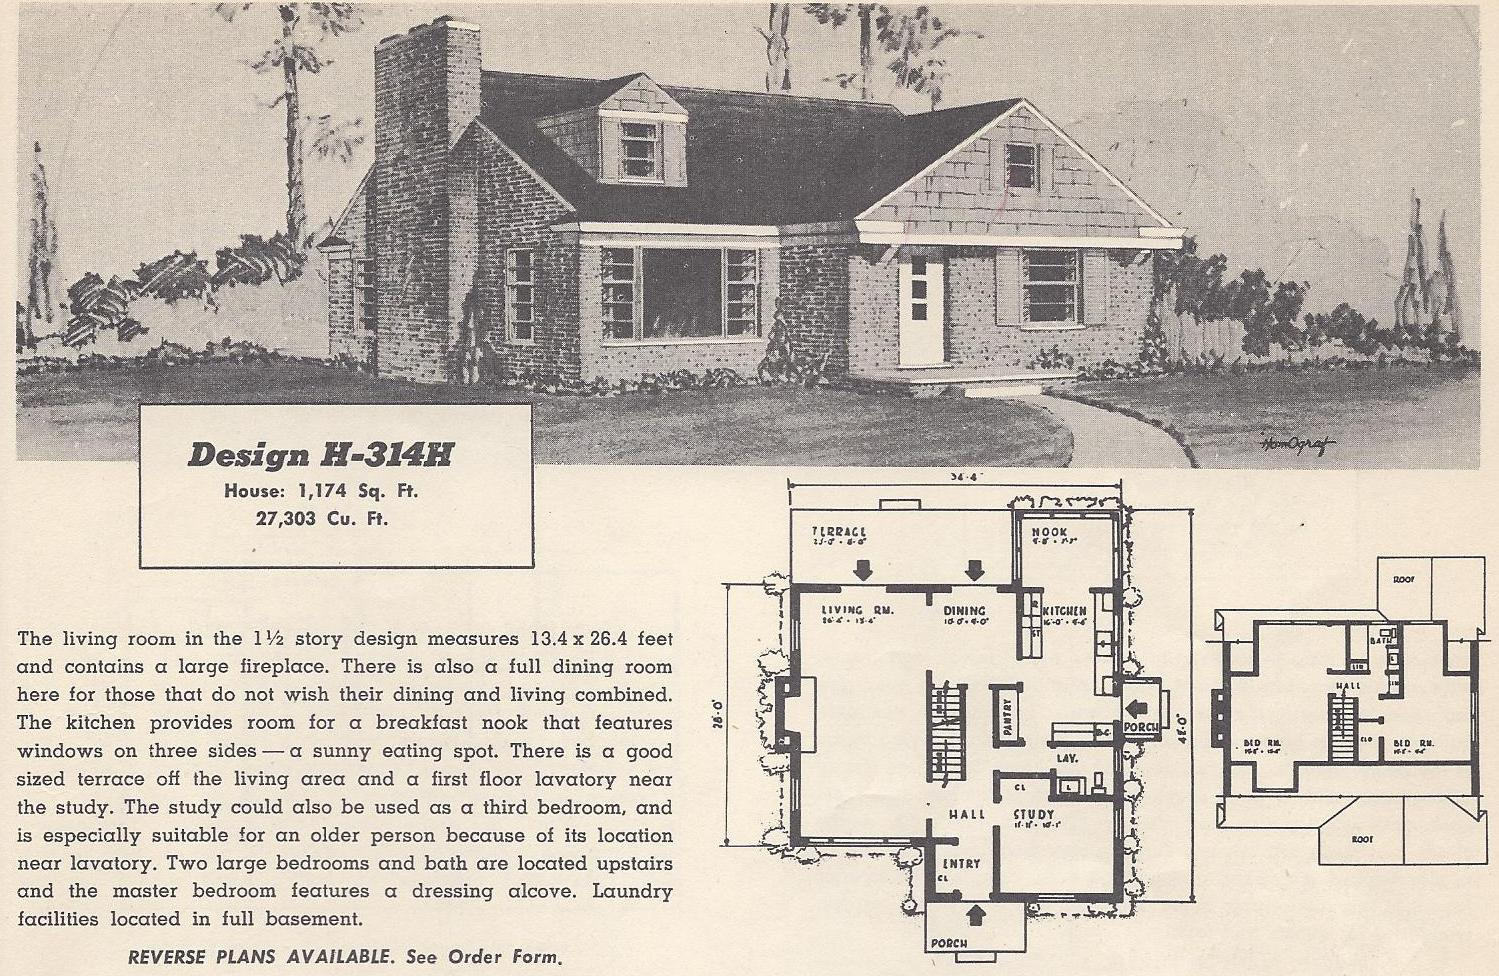 Vintage house plans 314h antique alter ego for Vintage home plans